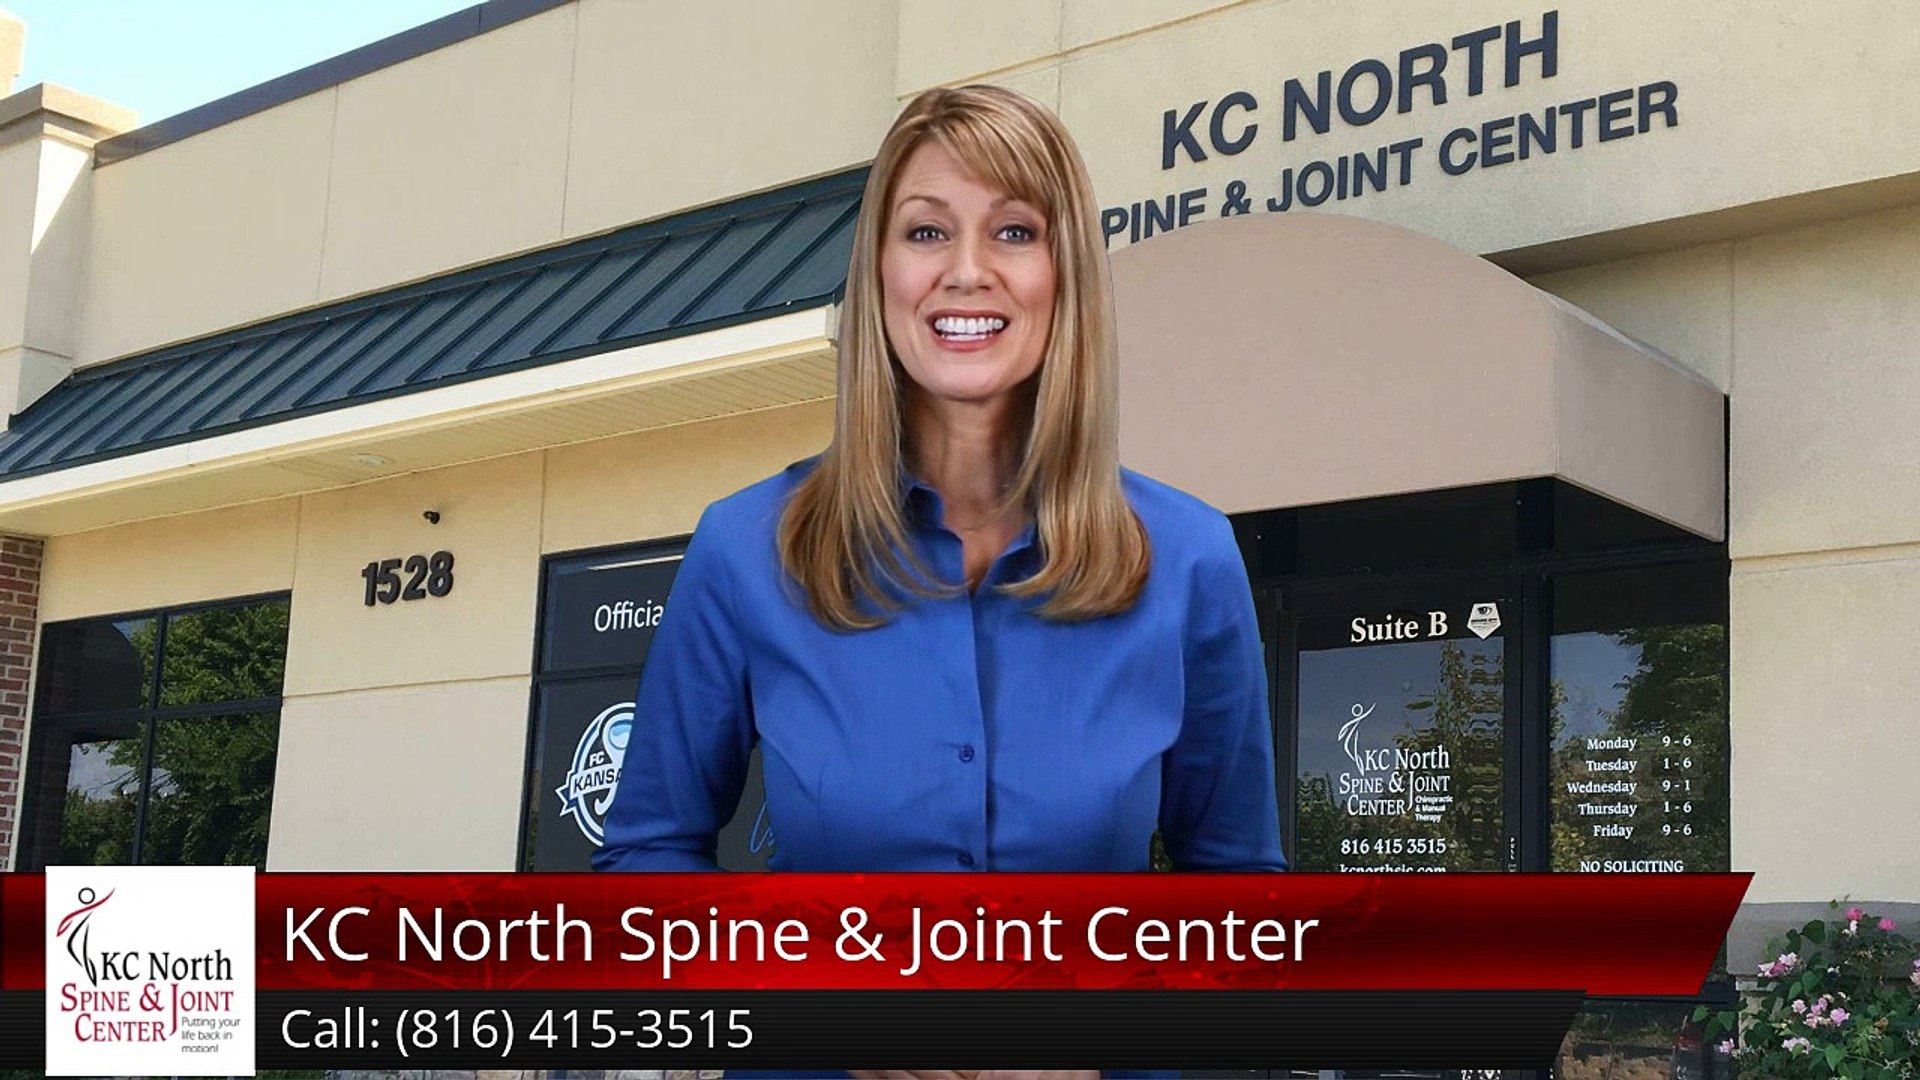 KC North Spine & Joint Center LibertyImpressiveFive Star Review by Peter M.